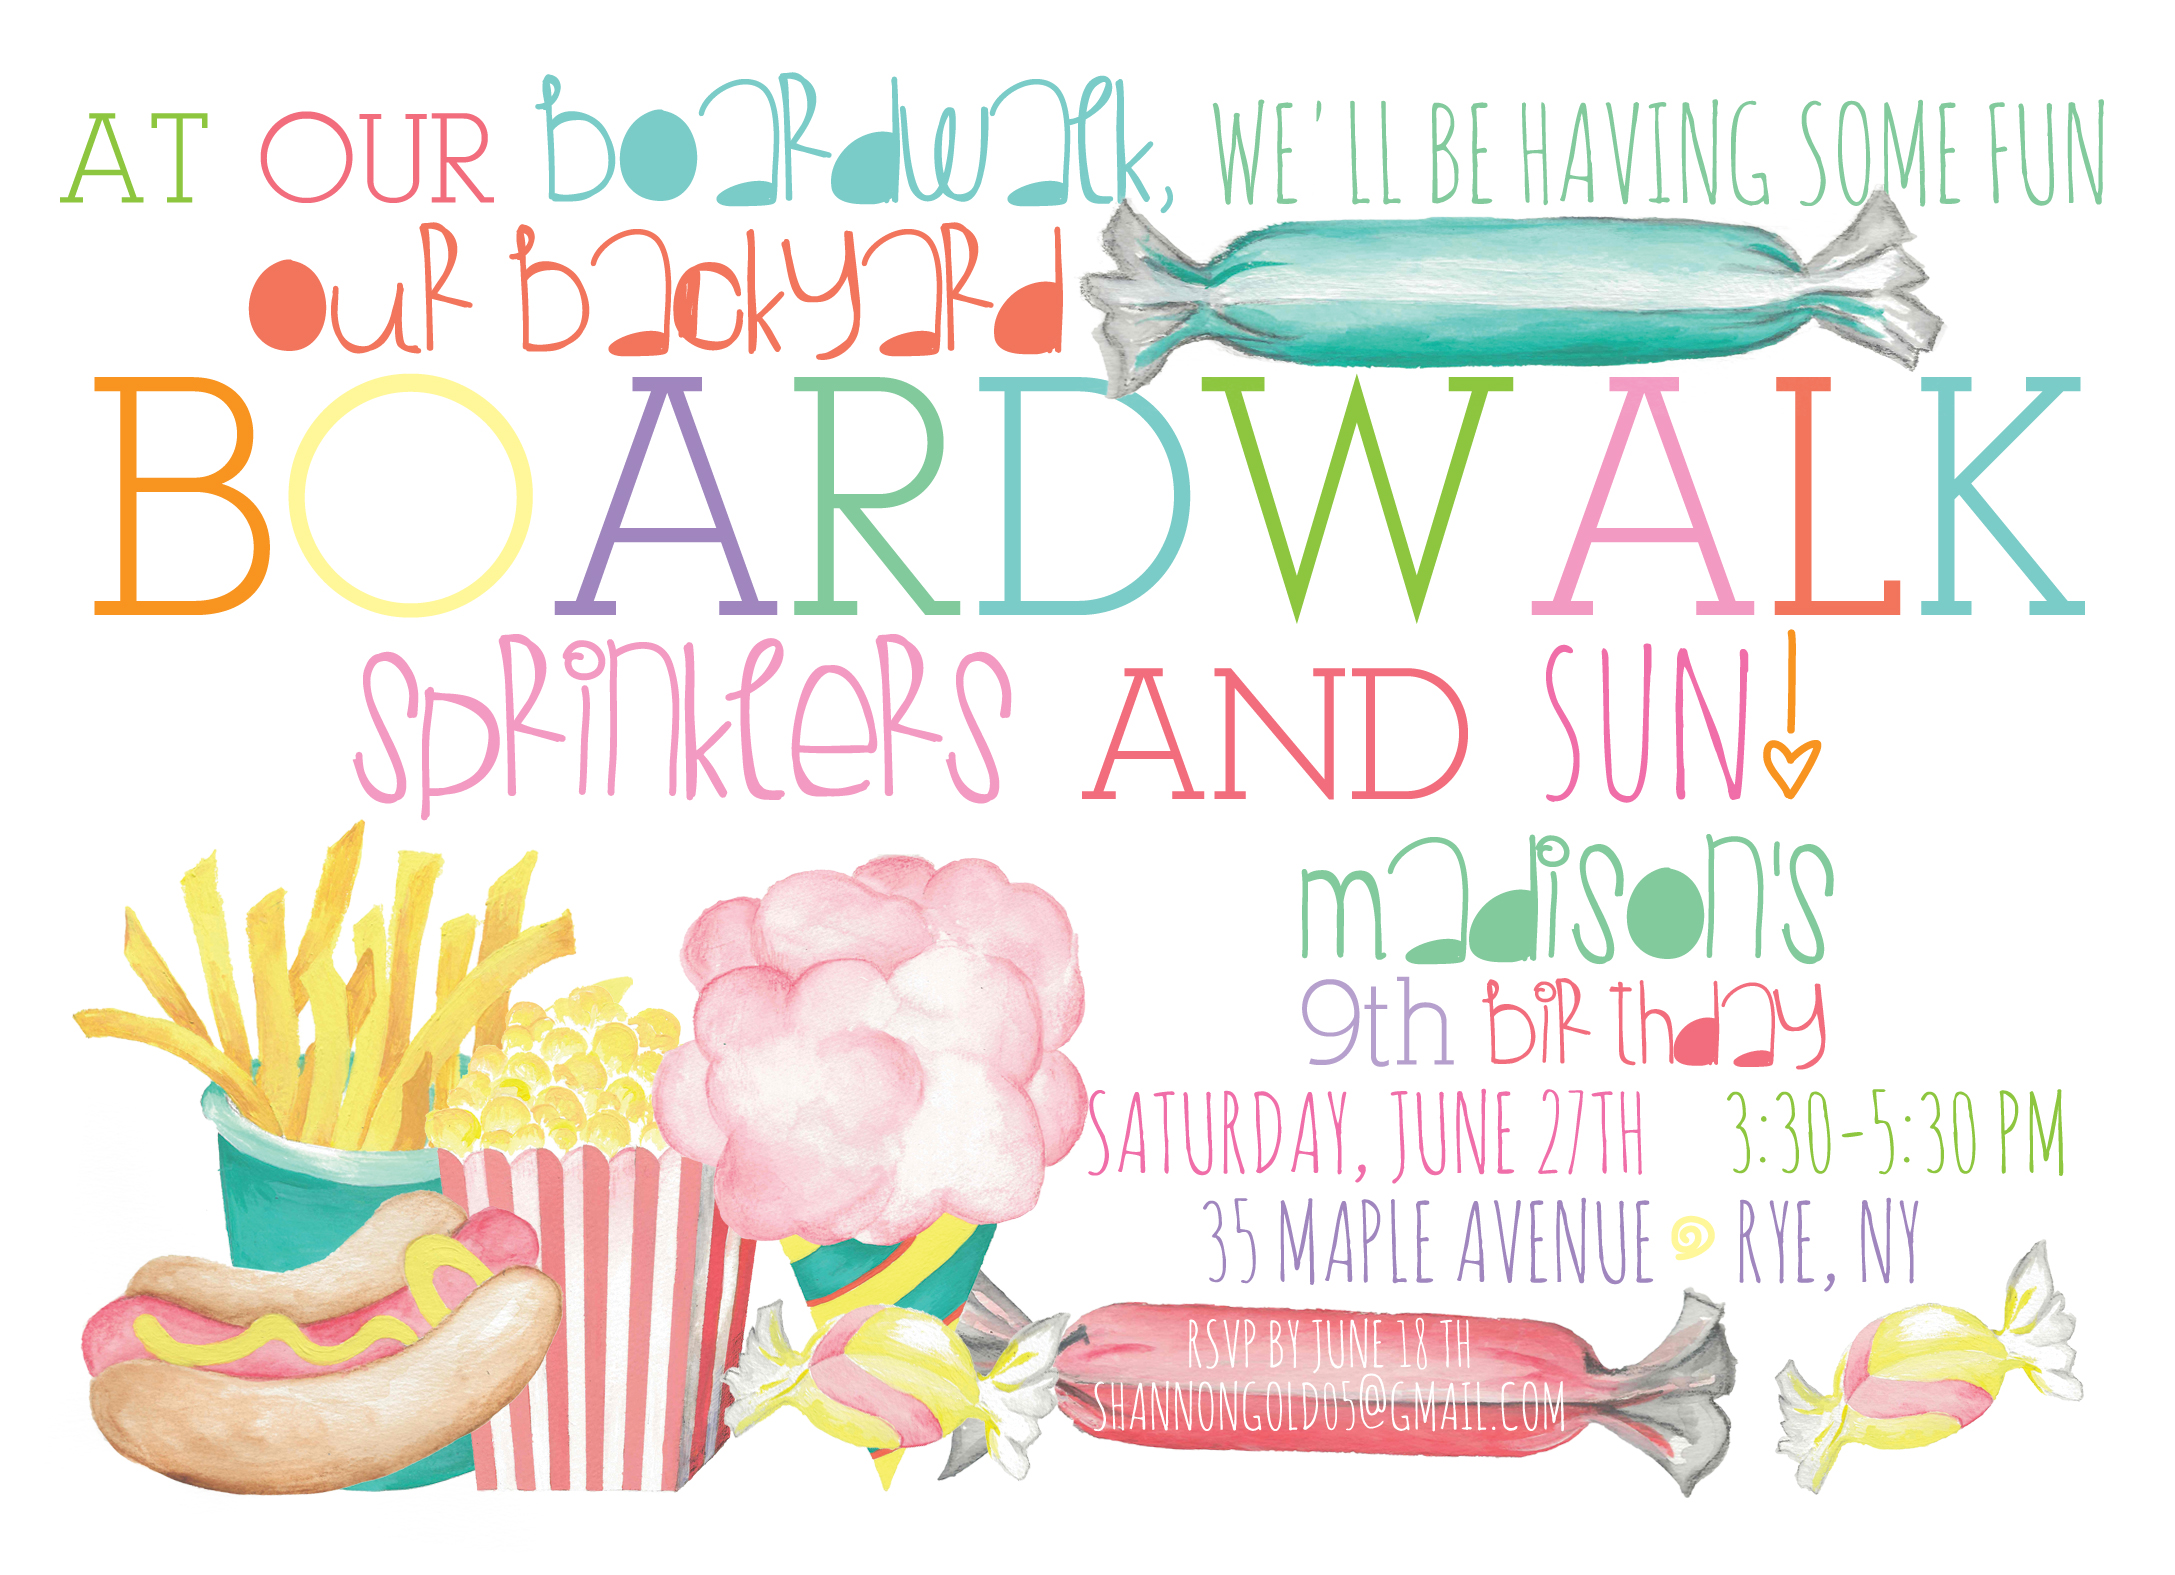 Boardwalk clipart exciting To happen? 9! wanted How